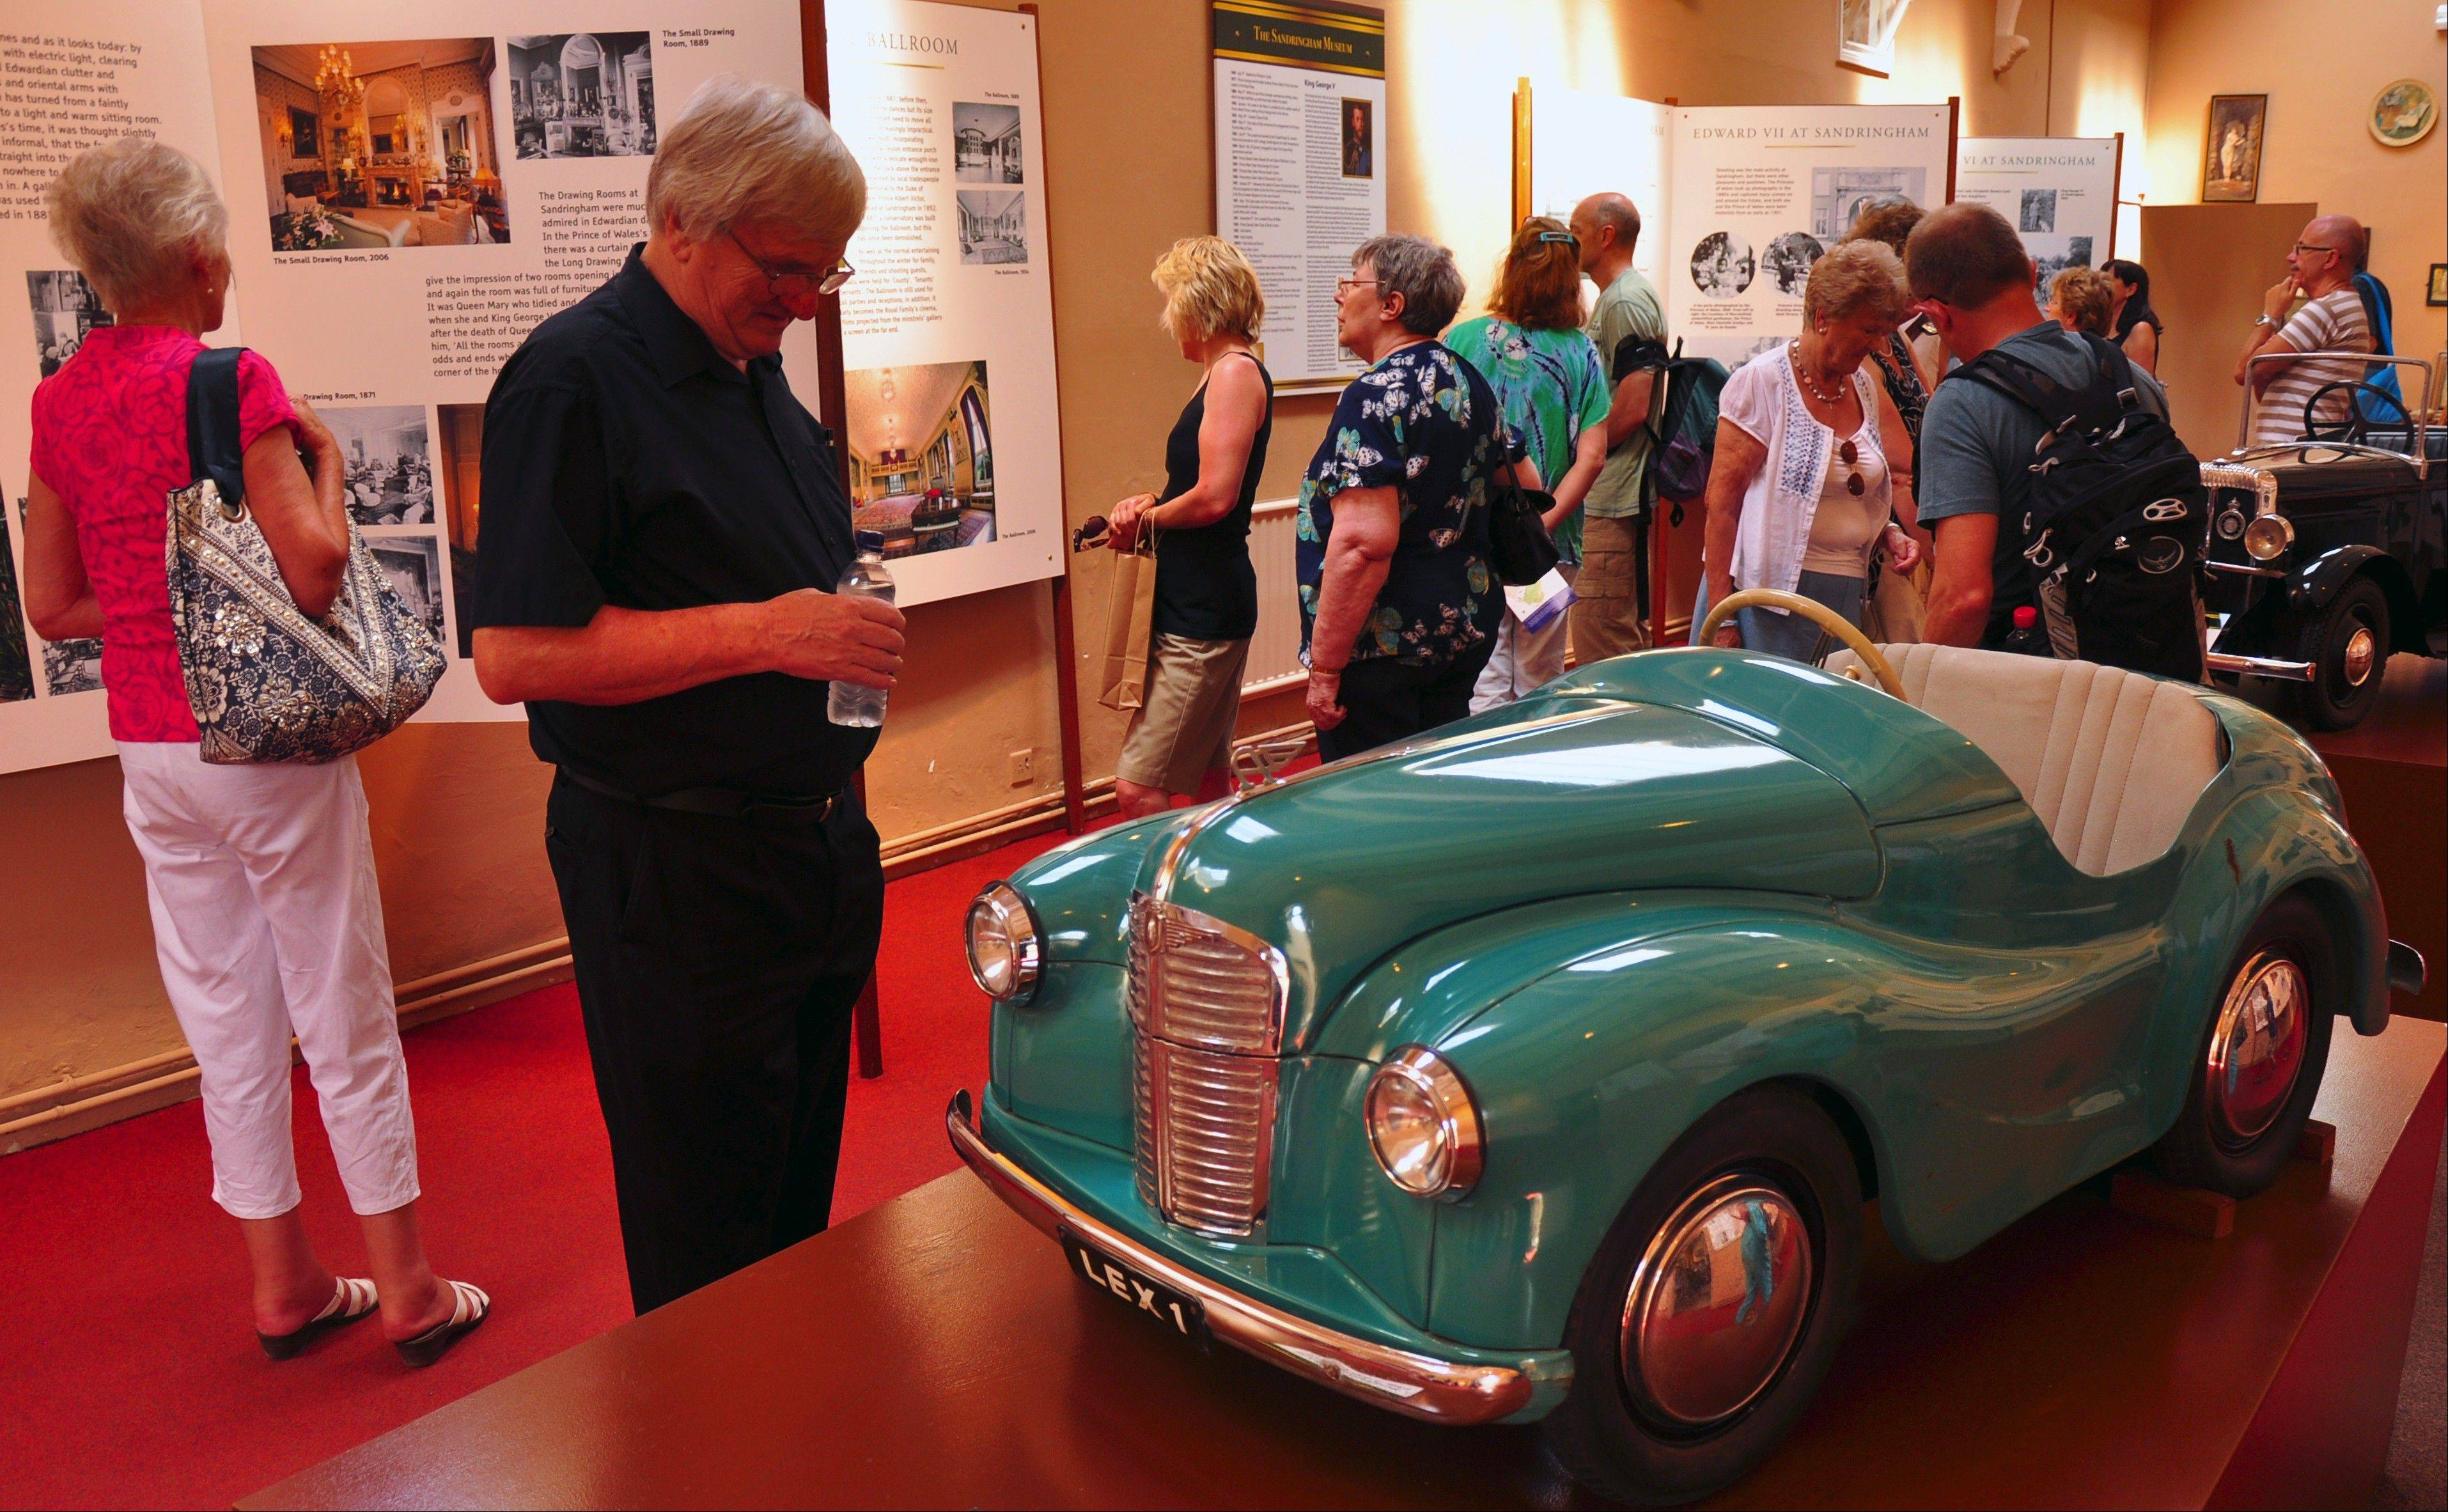 Miniature motorcars used by children in the royal family are on display in the Long Gallery of the museum at Sandringham.